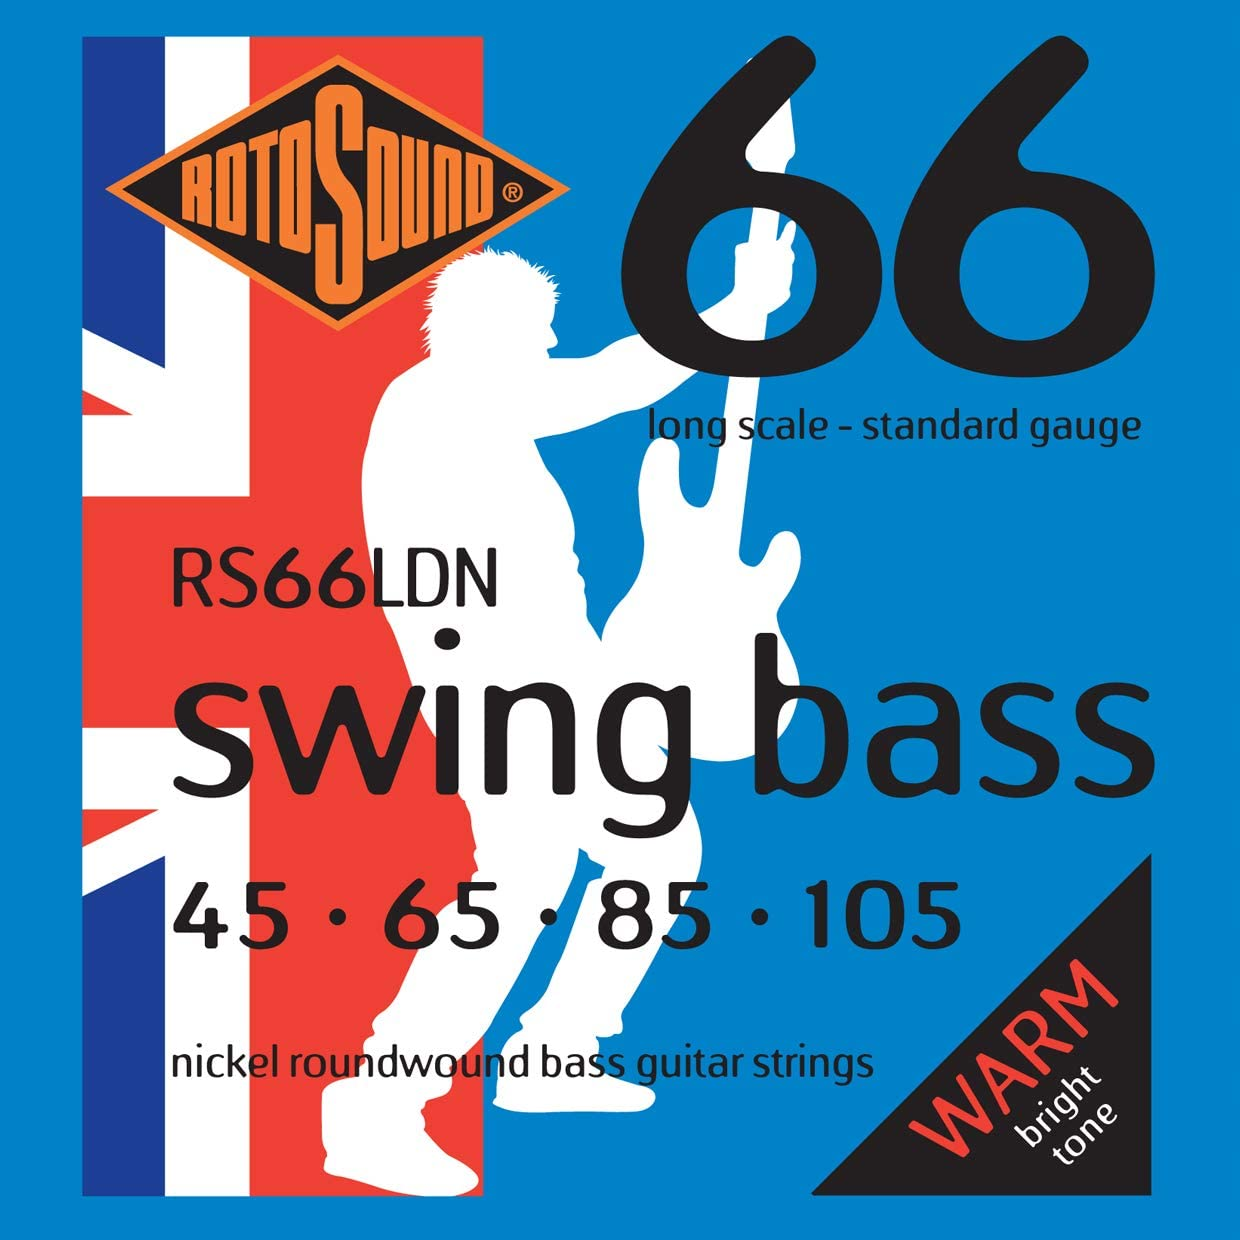 Rotosound RS66LDN Swing Bass Nickel 45-105 Bass Strings